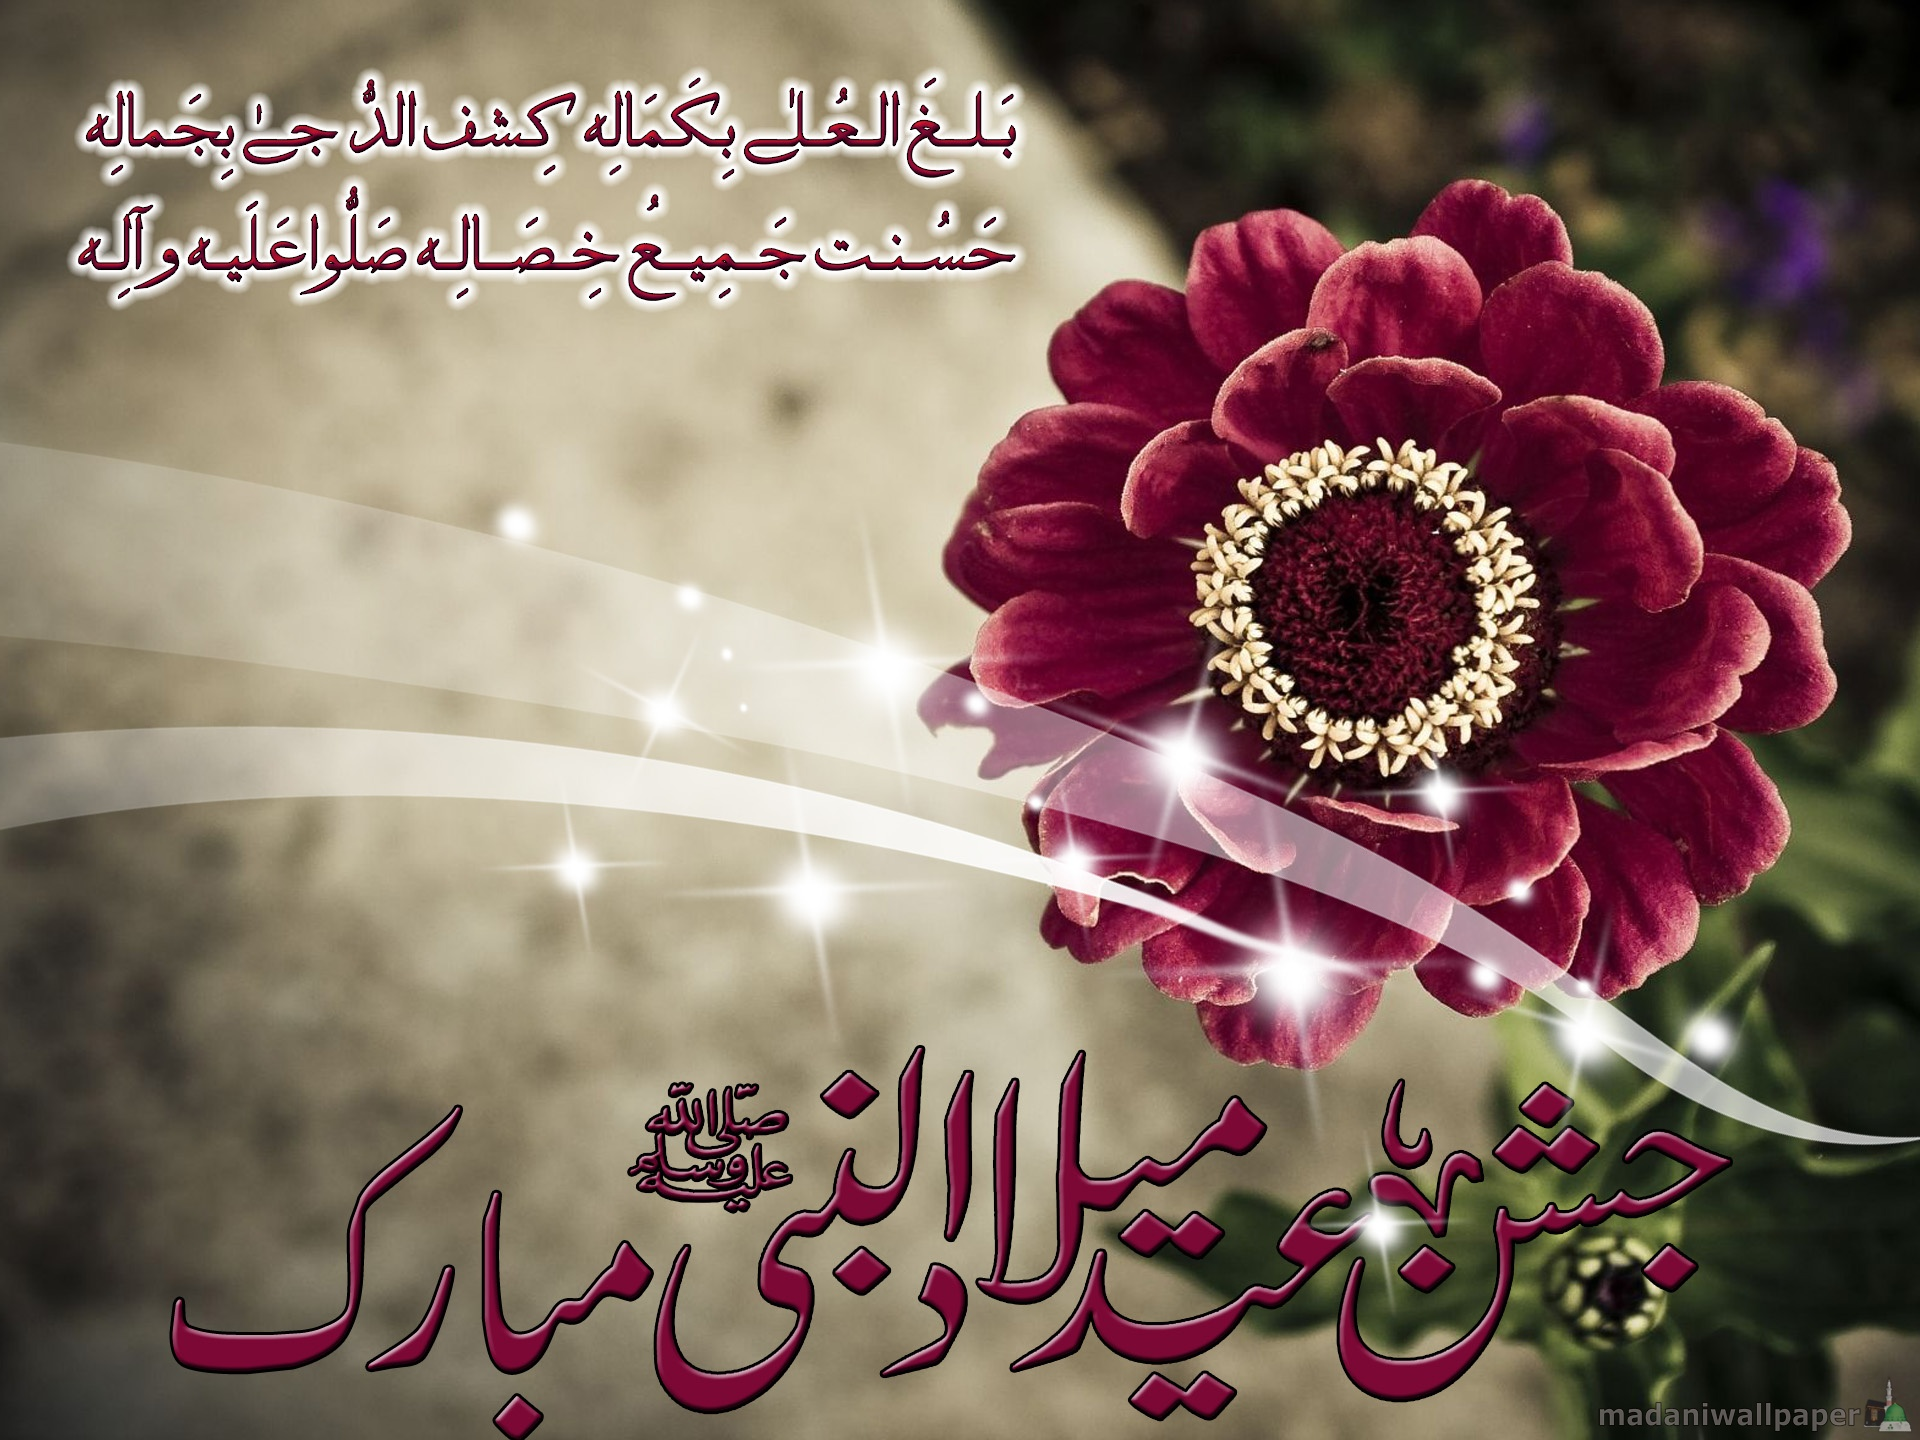 Wallpaper download eid milad un nabi -  Islam Wallpaper